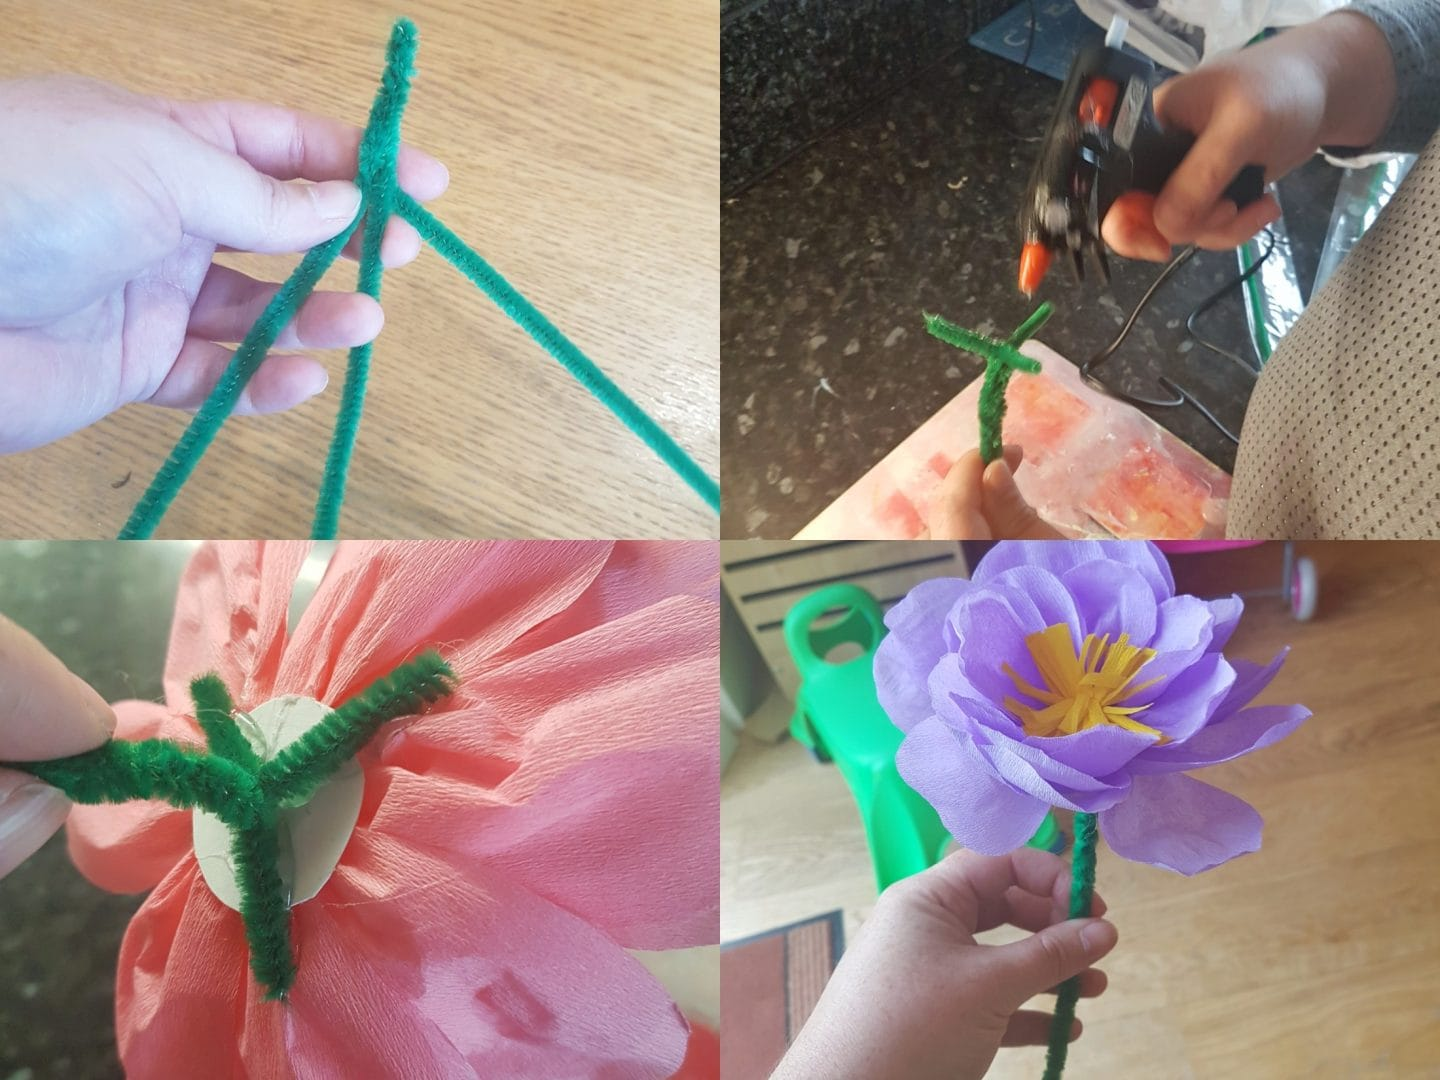 Adding the stalks to the paper flowers for paper flowers craft